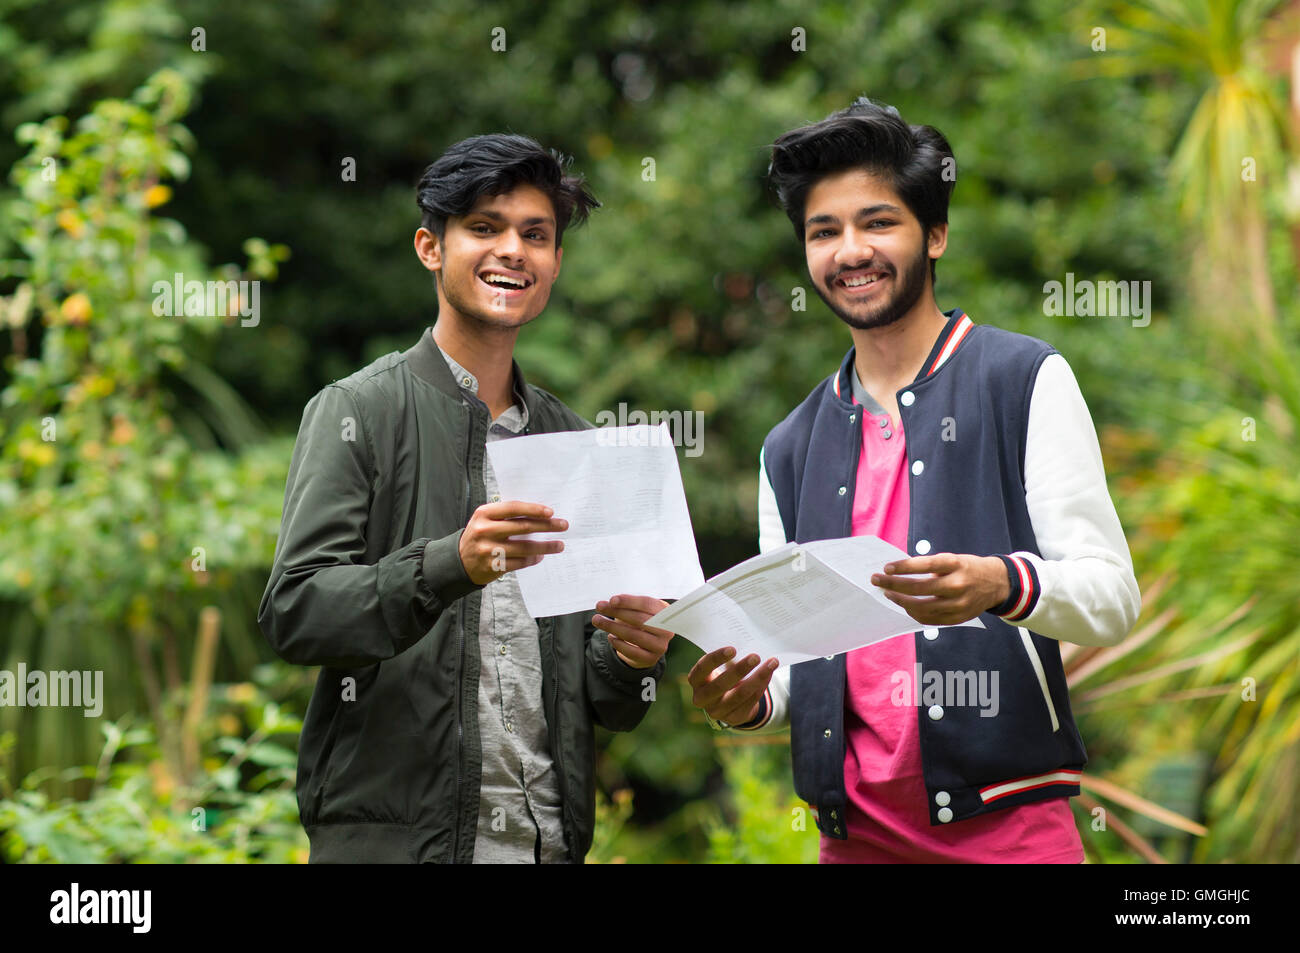 Male students collect their GCSE results at a school. - Stock Image